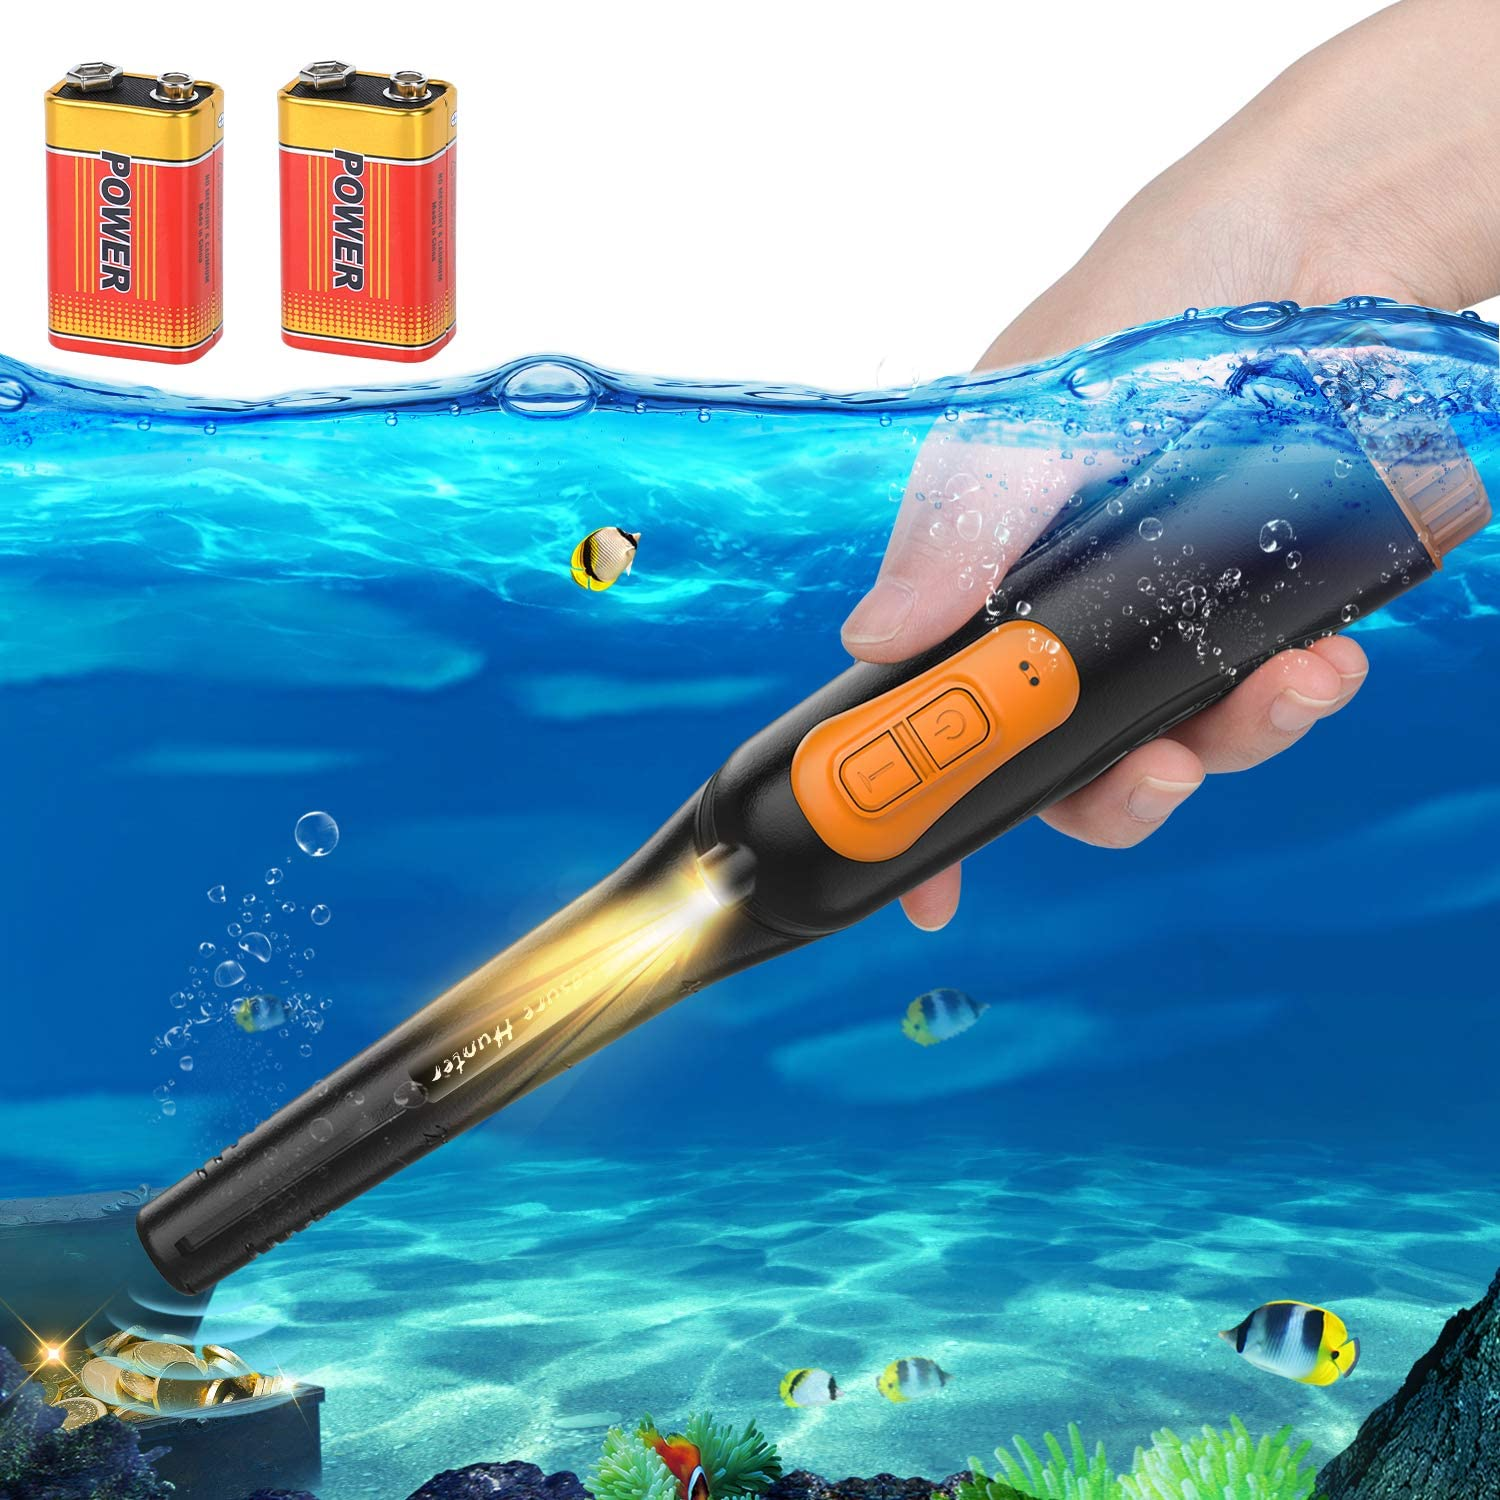 Portable Metal Detector Waterproof Metal Detector Handheld LED Indicator 360/° Scan Gold Detector with Buzzer Vibration Automatic Tuning for Kids Adults Orange